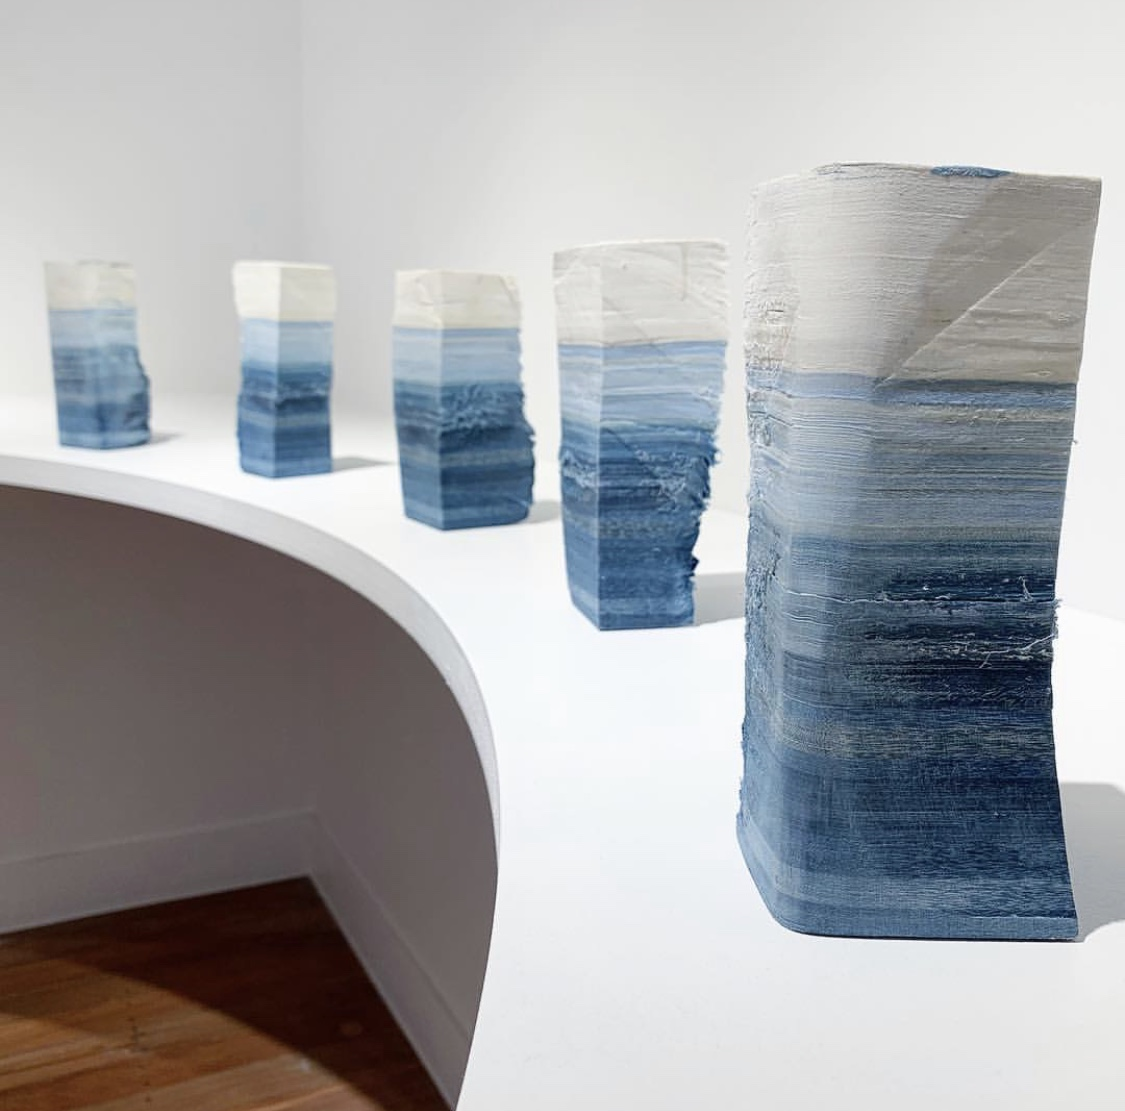 Recuperated Material Monuments, 2018.   Indigo dyed, layered, salvaged textiles (bedsheets). Installation Image: Rachael Wellisch.